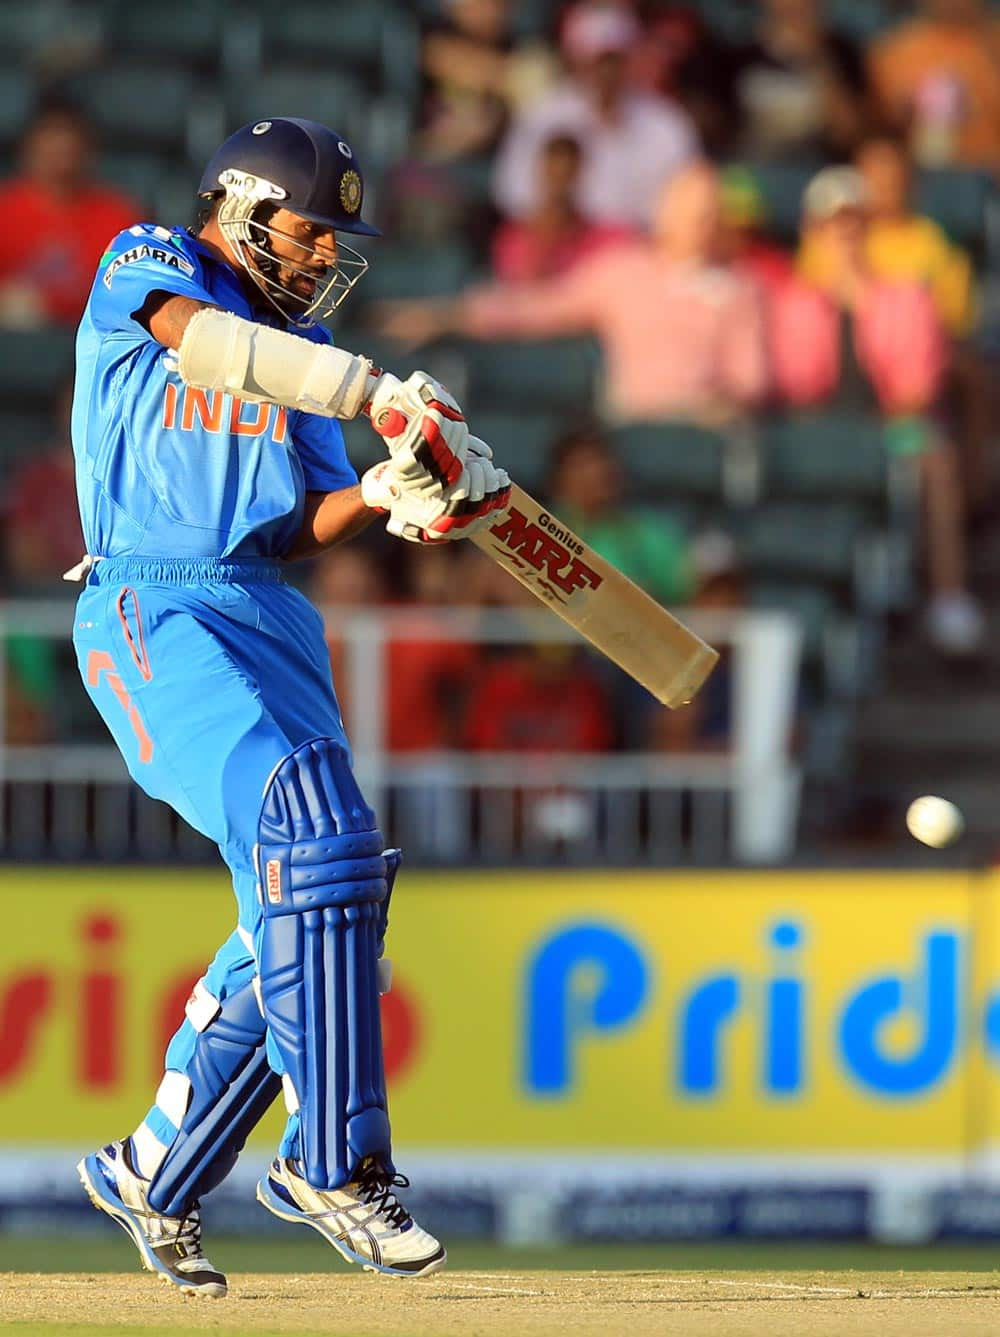 India's batsman Shikhar Dhawan, plays a shot during their 1st One Day International cricket match against South Africa at Wanderers stadium in Johannesburg, South Africa.